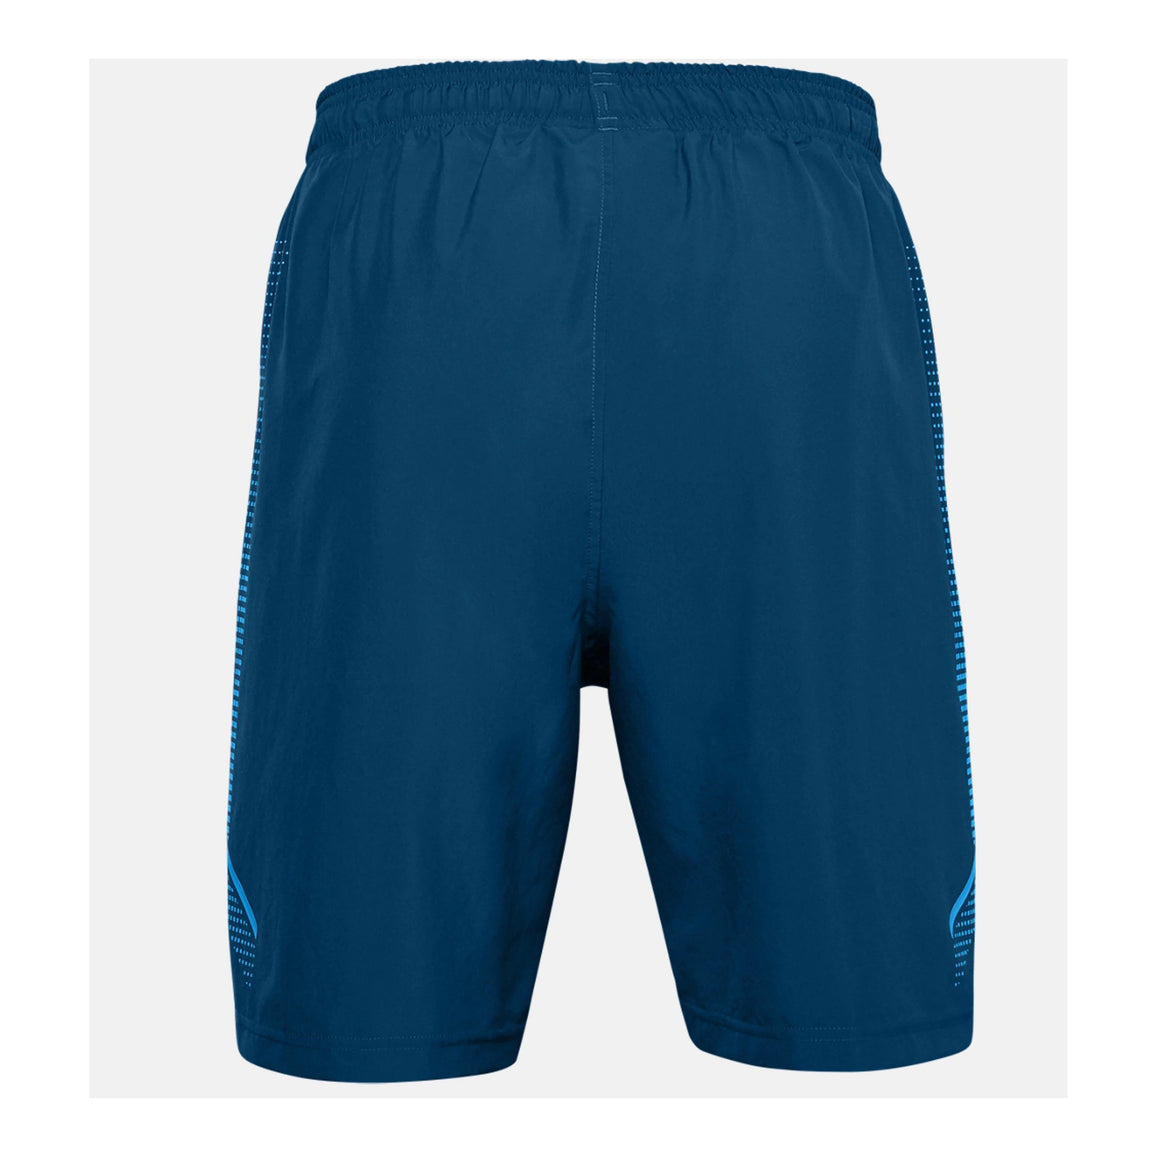 Woven Graphic Shorts for Men in Blue